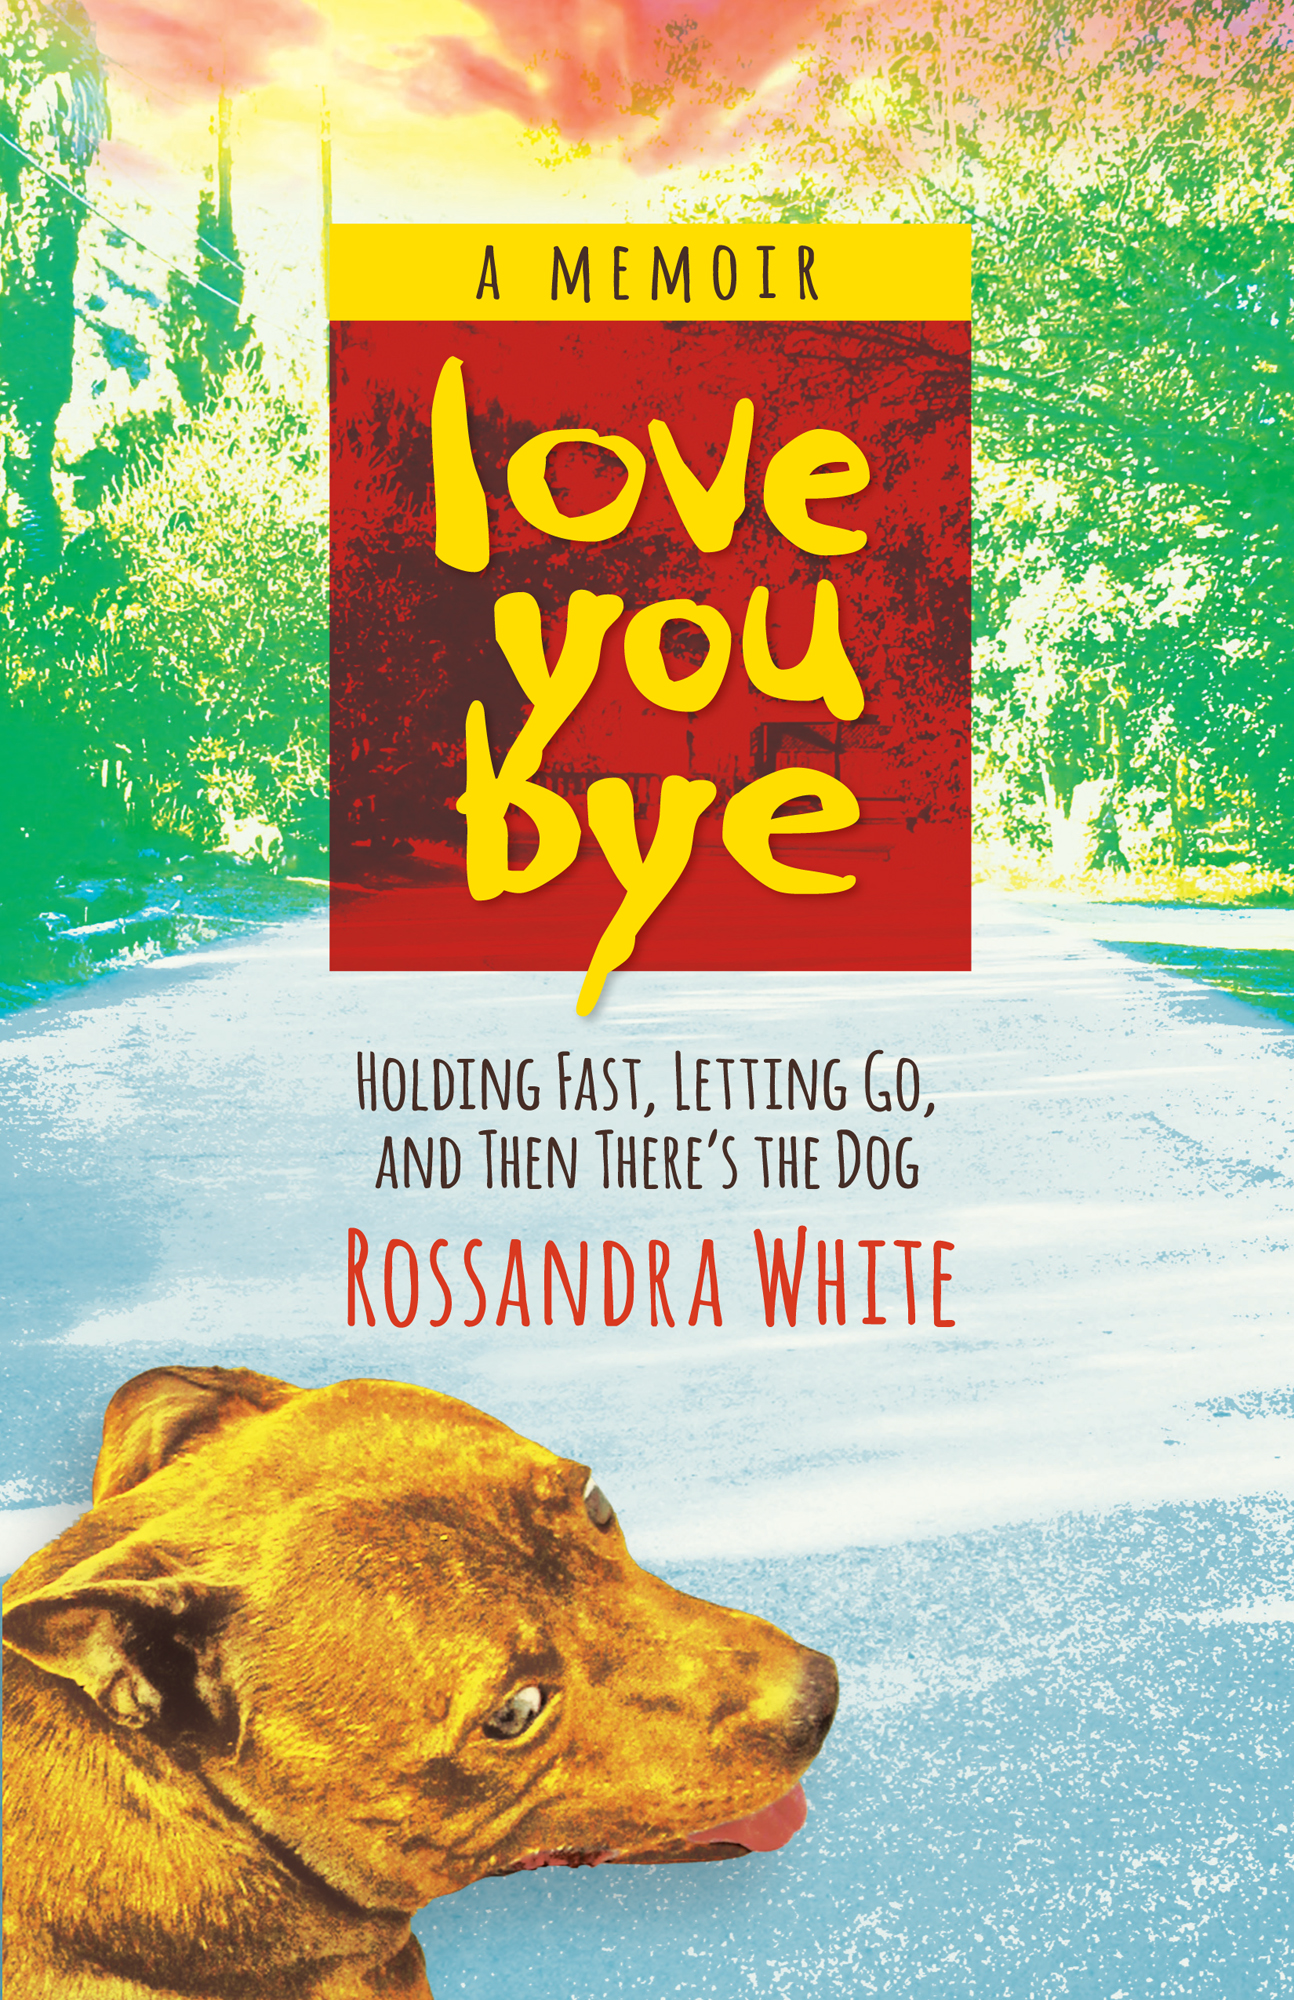 Loveyoubye: Holding Fast, Letting Go, and Then There's The Dog By Rossandra White